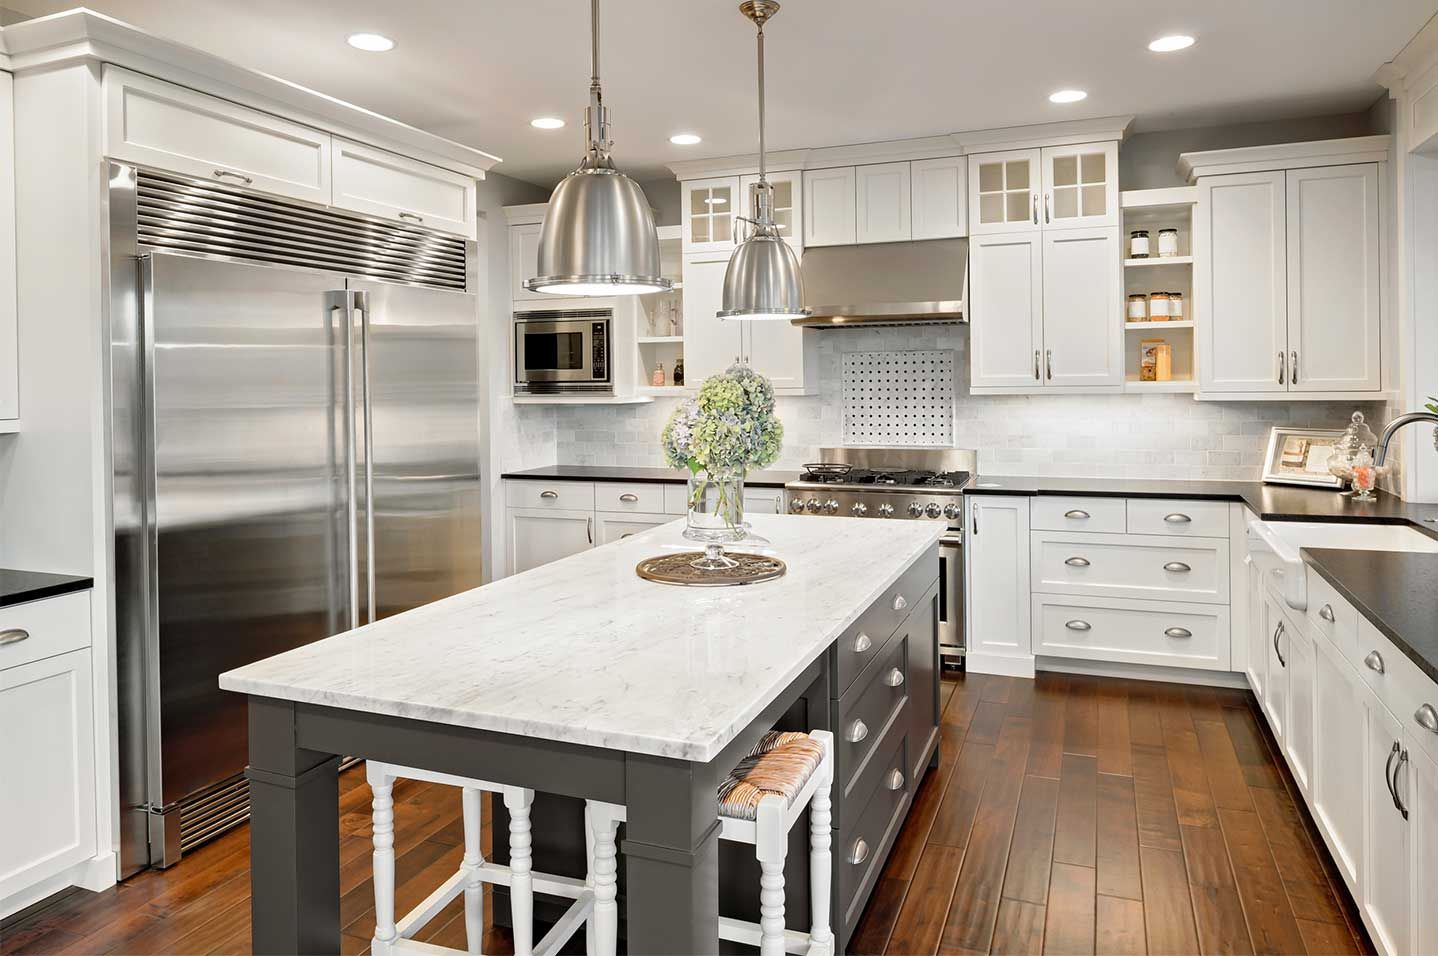 Super White Granite Kitchen Super White Granite Is Still The Most Popular Kitchen Countertop